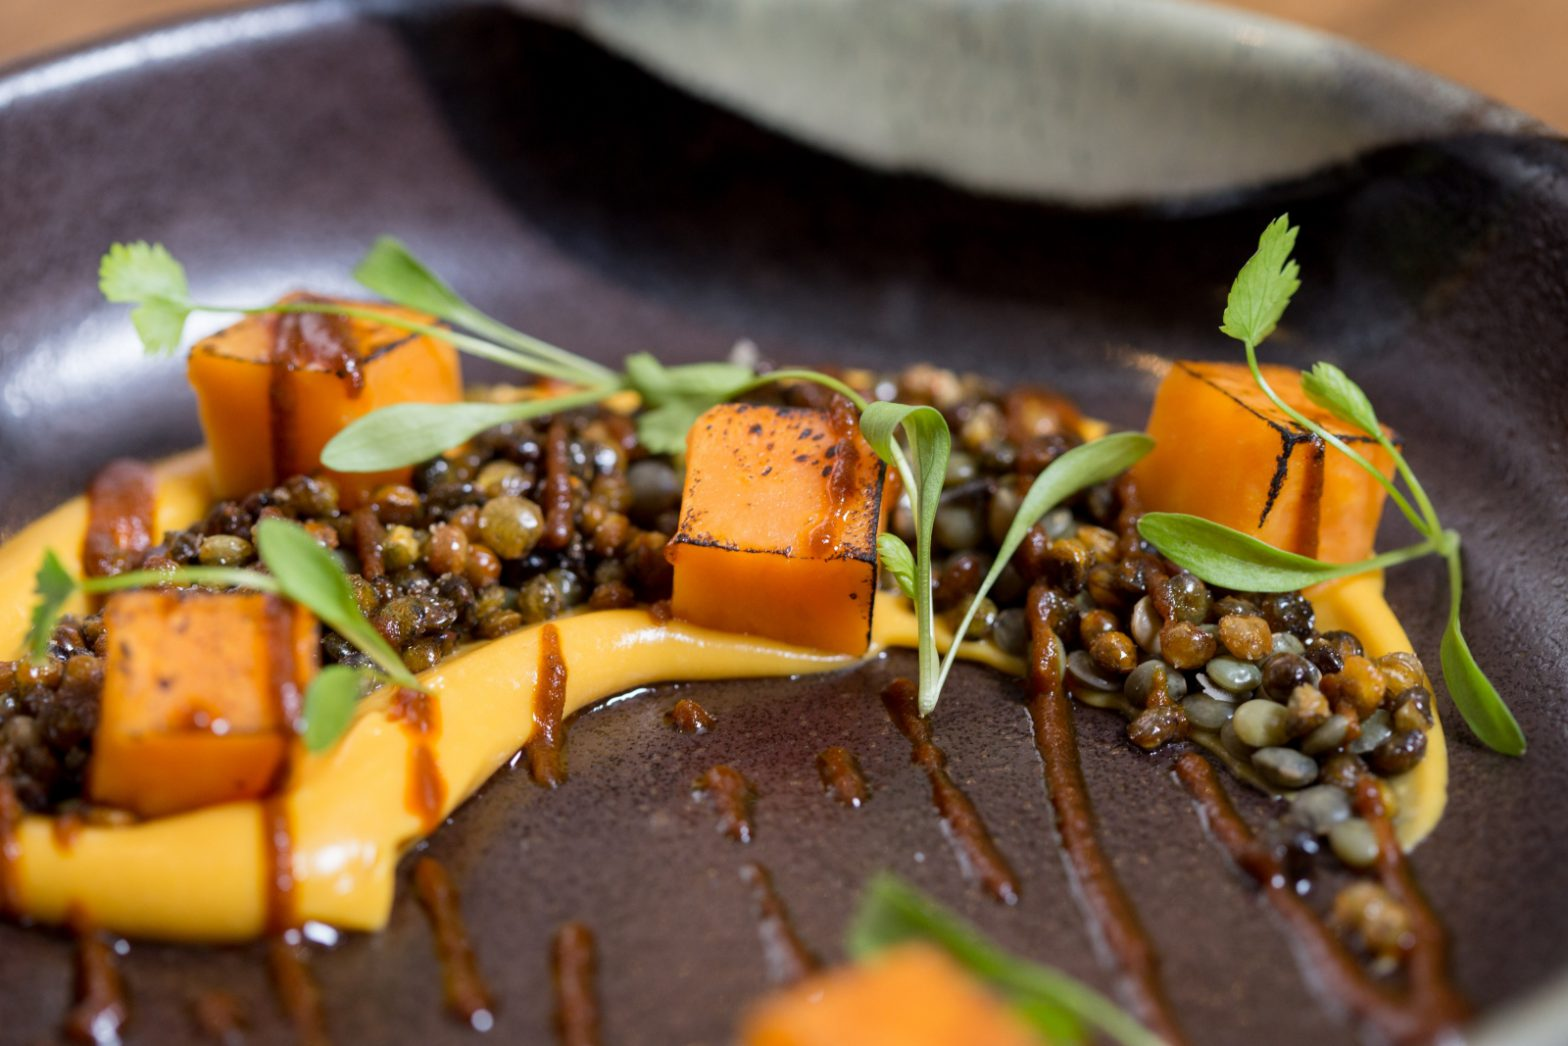 Gourmet Sweet Potato and Puy Lentil Dhal